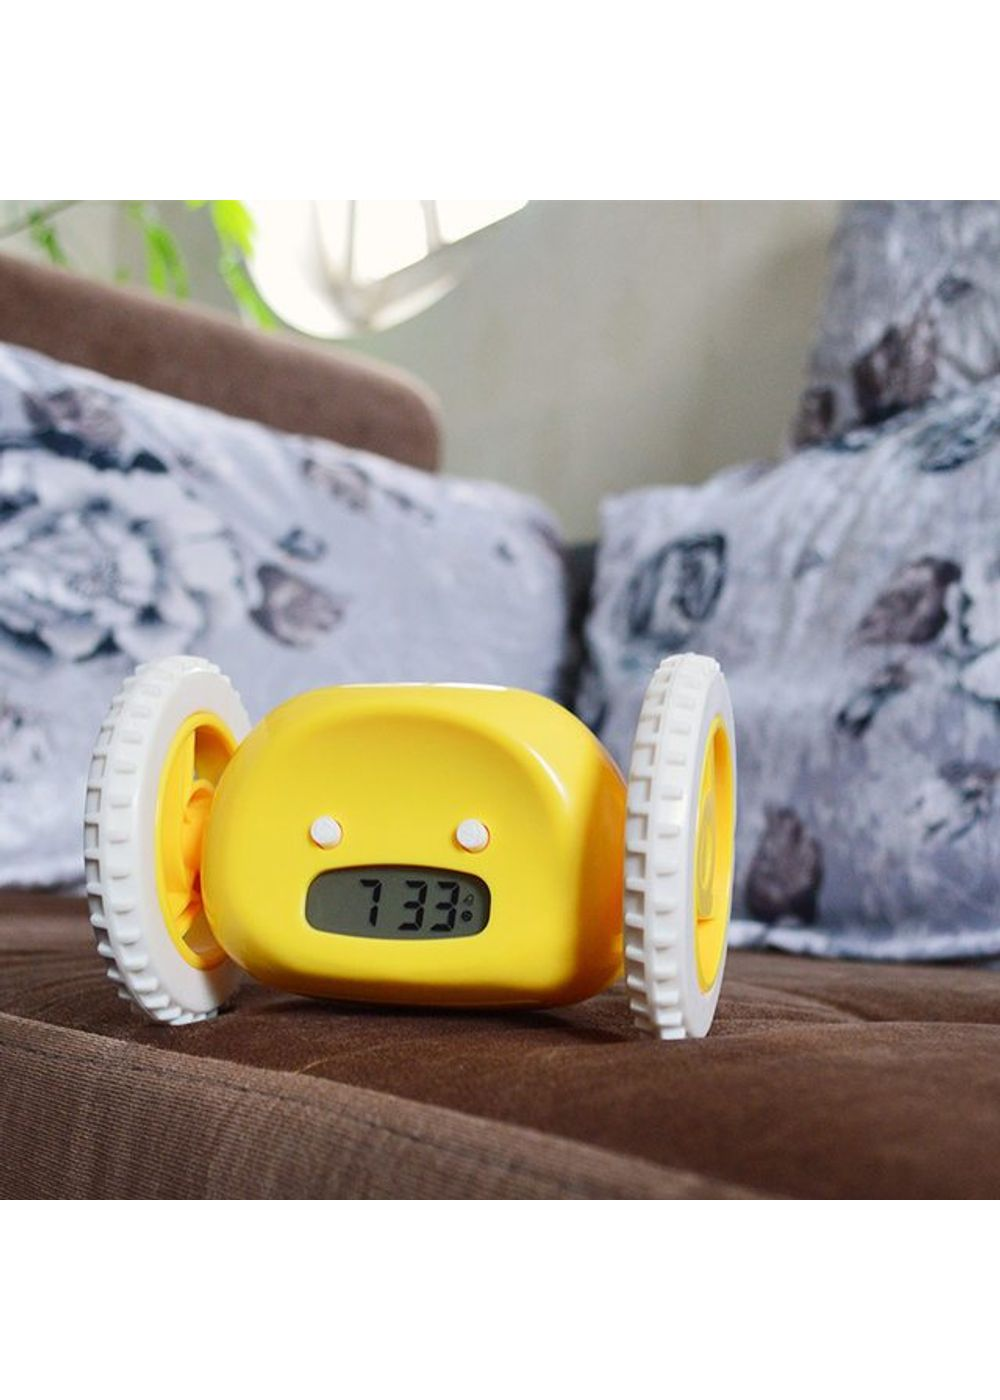 Image result for CLOCKY the Original Runaway Alarm Clock on Wheels